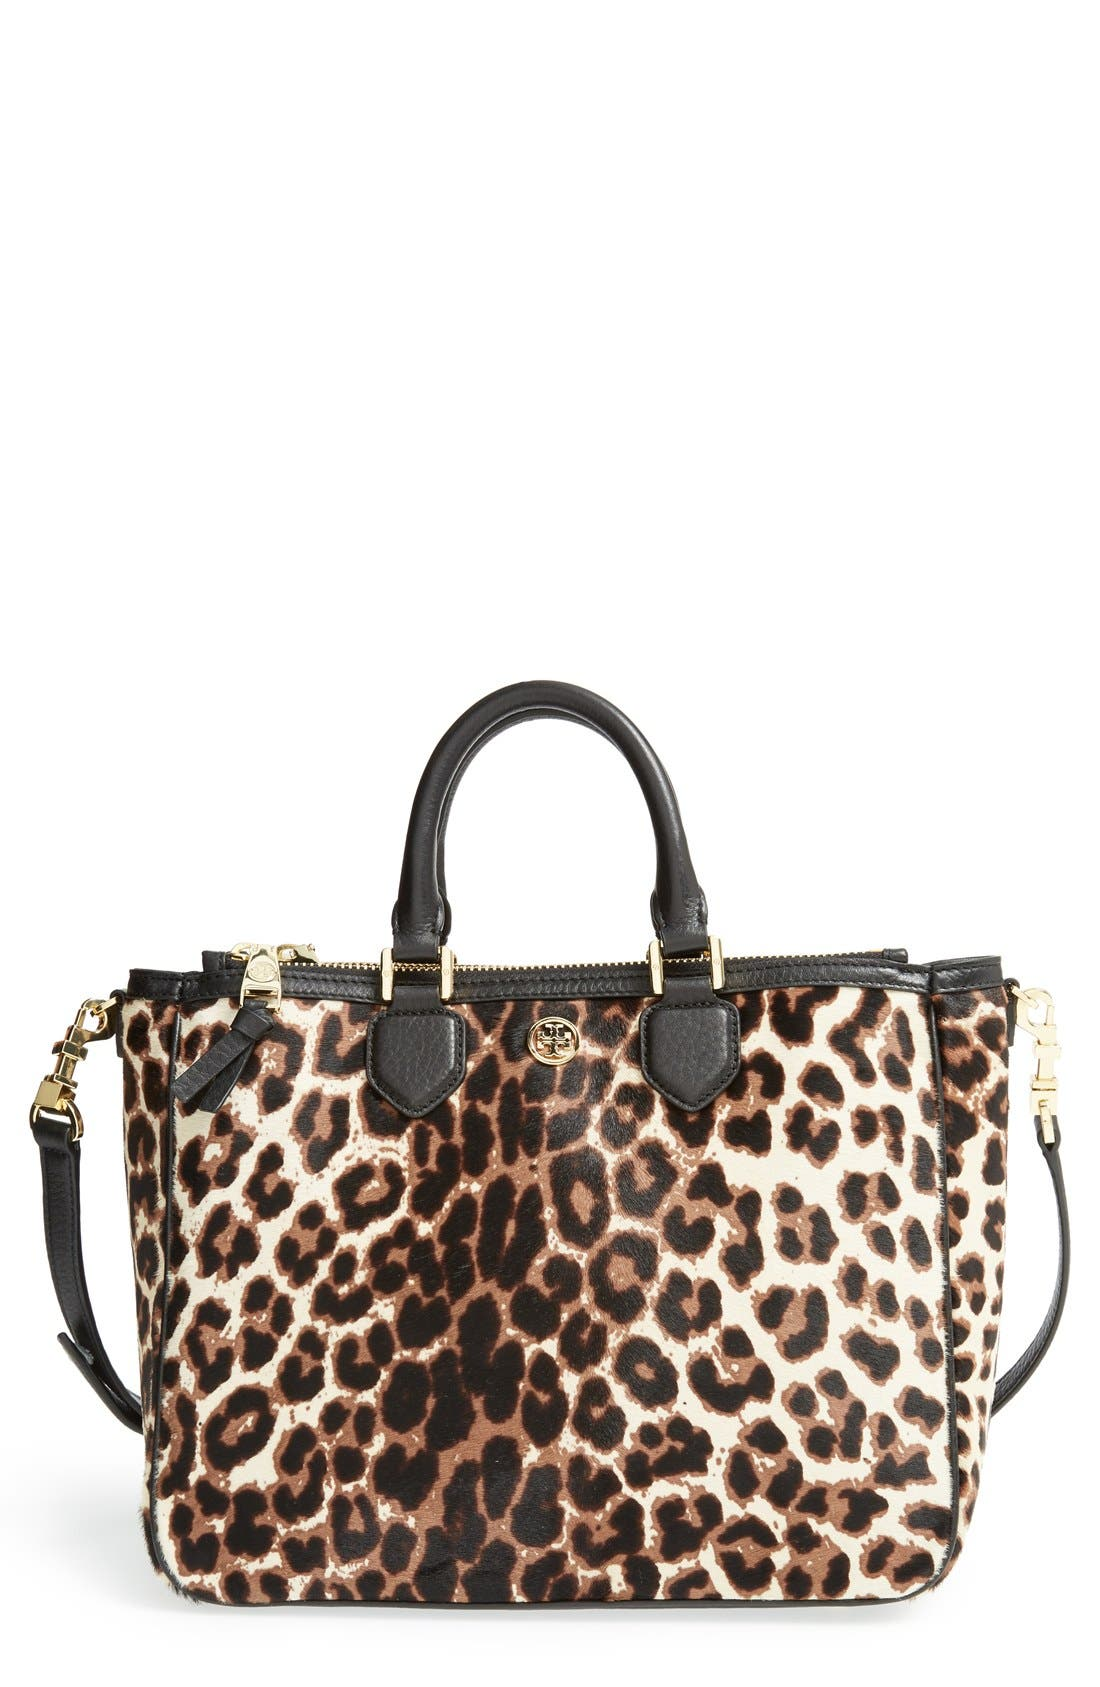 Main Image - Tory Burch 'Robinson' Genuine Calf Hair & Leather Tote